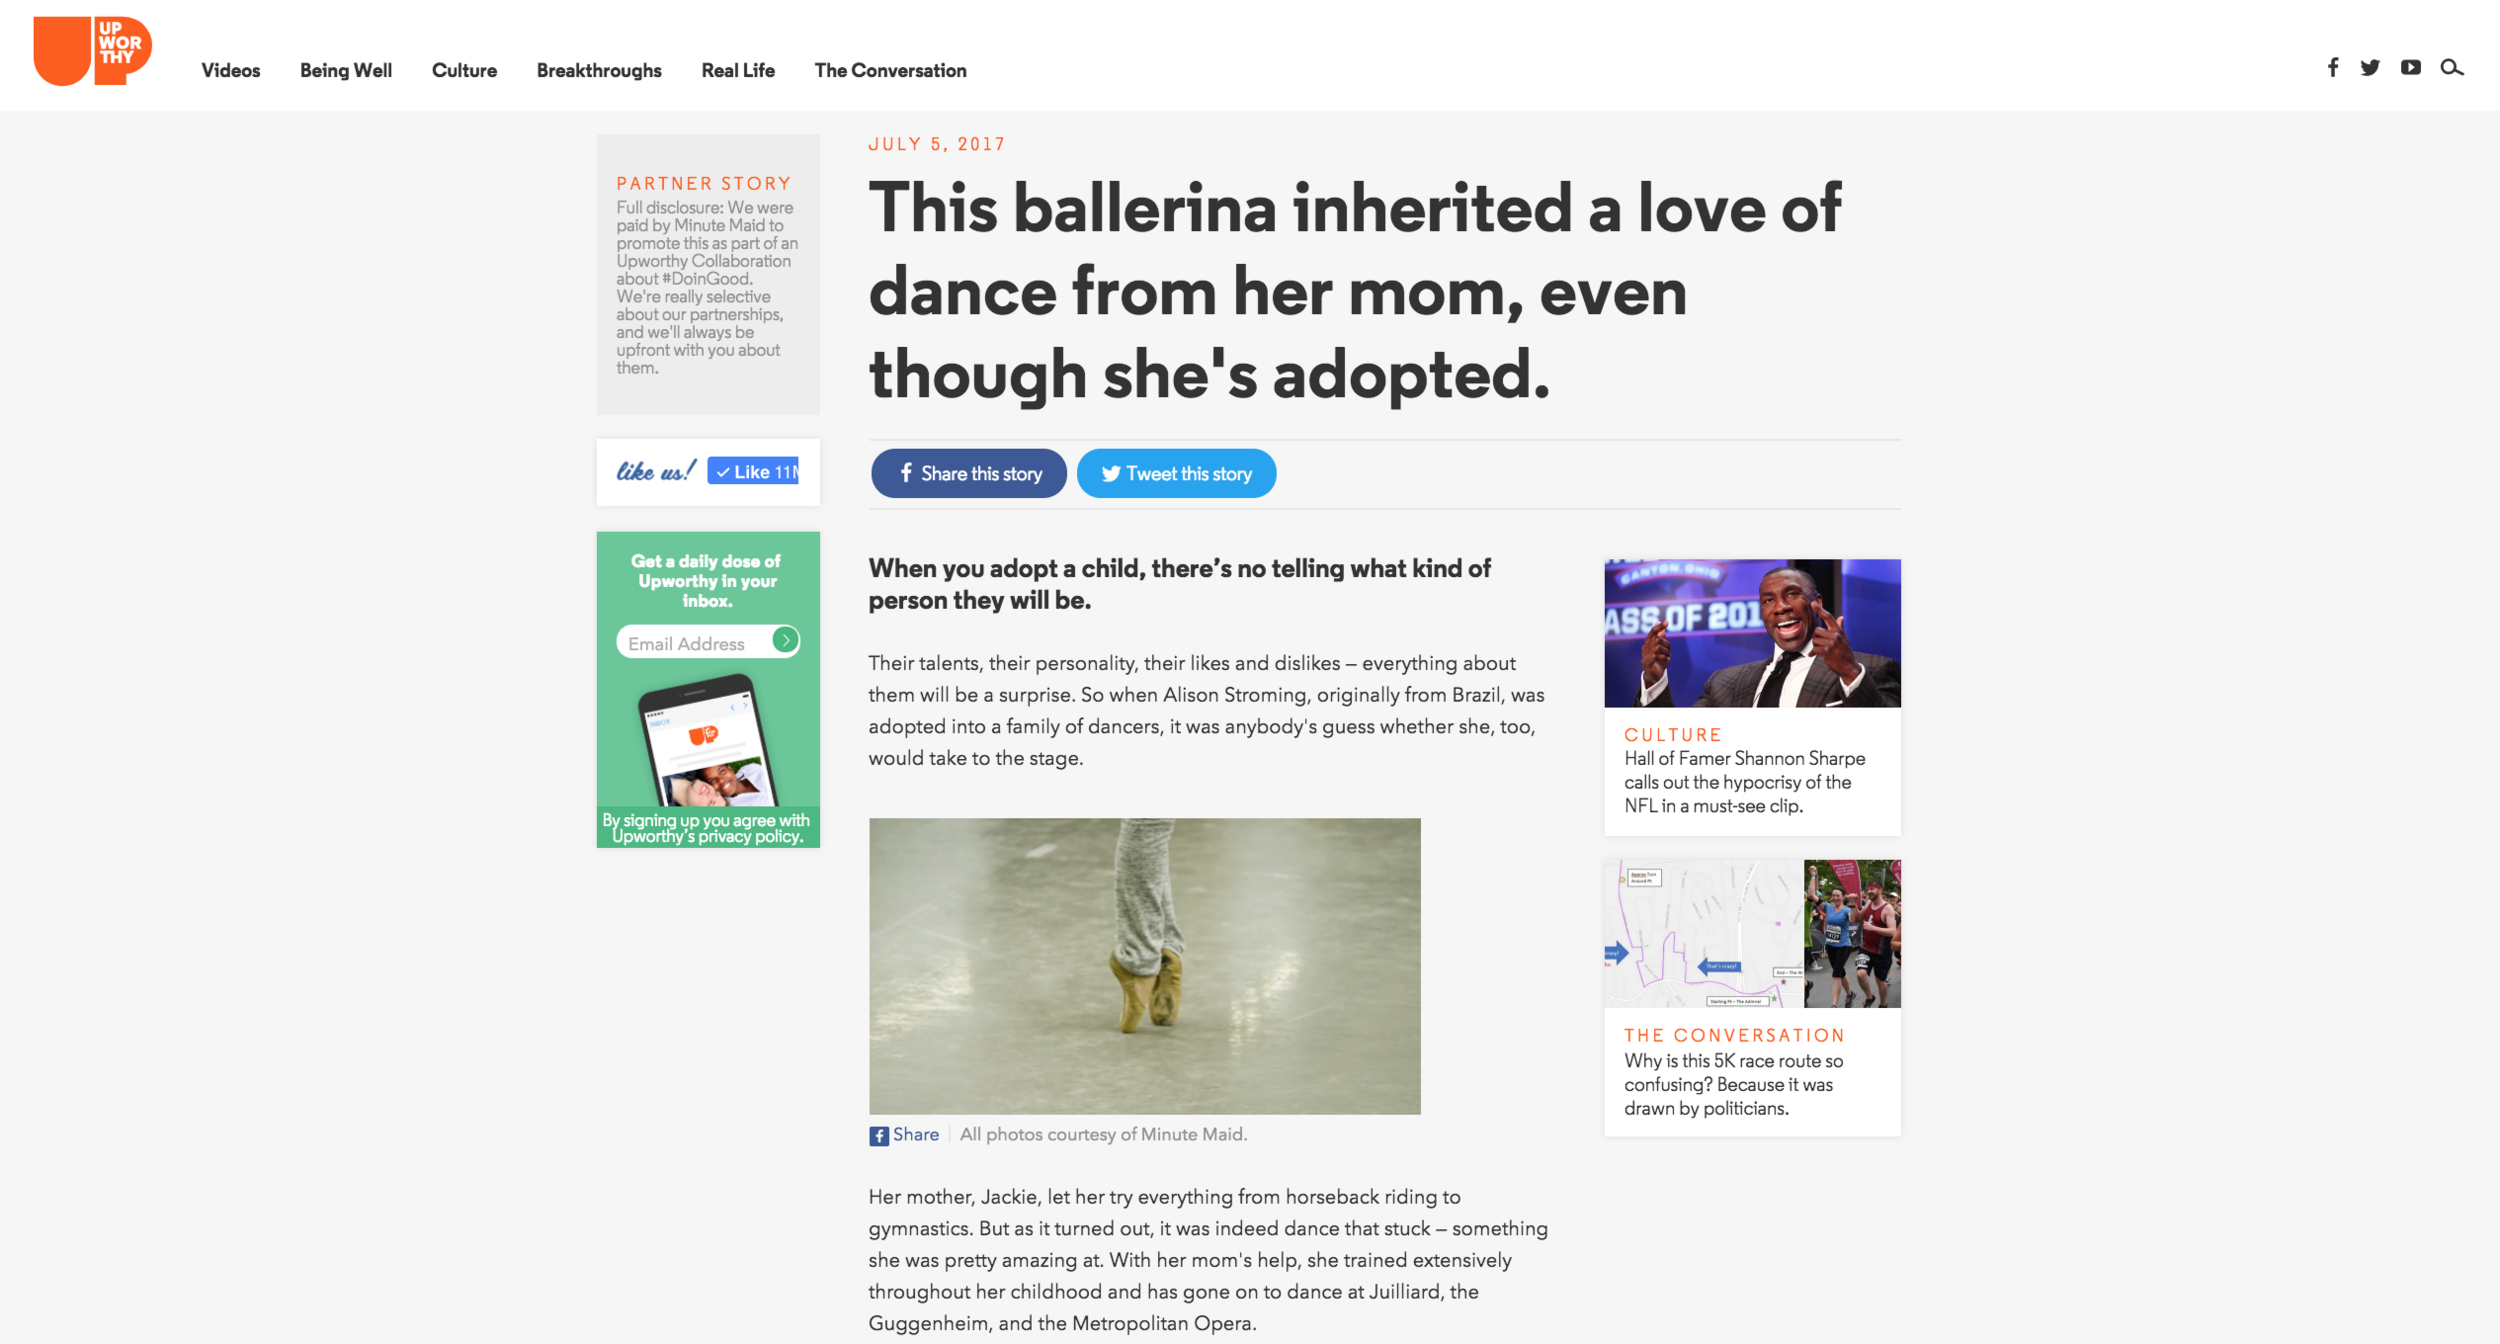 The Upworthy campaigns featured in-depth advertorial articles and enhanced digital content.